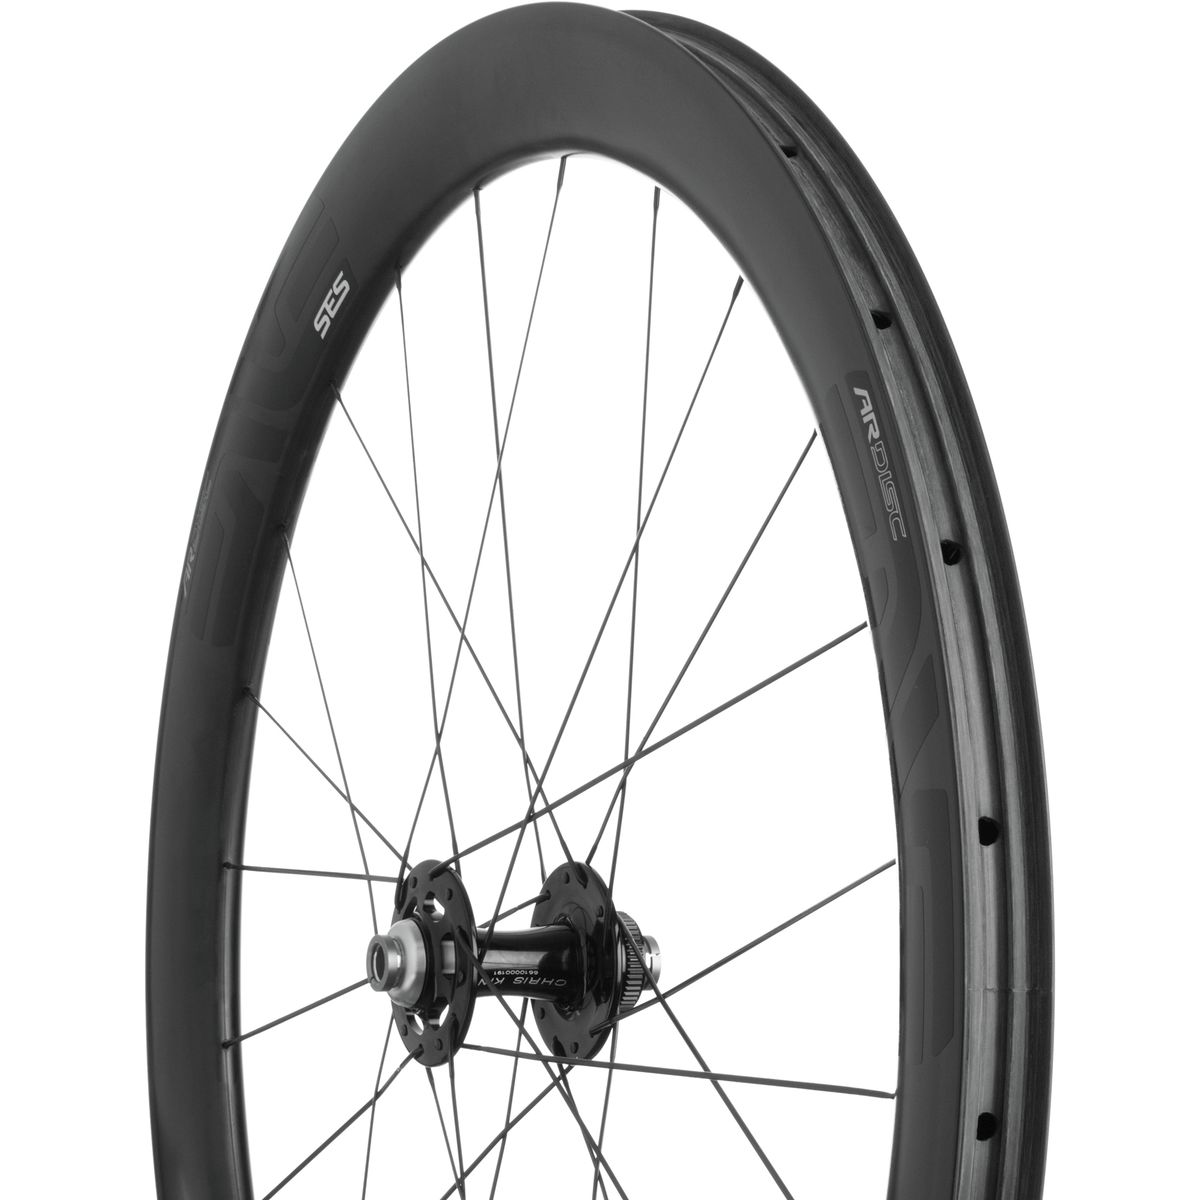 Enve Ses 3 4 Carbon Fiber Road Disc Wheelset Ses 3 4 Disc